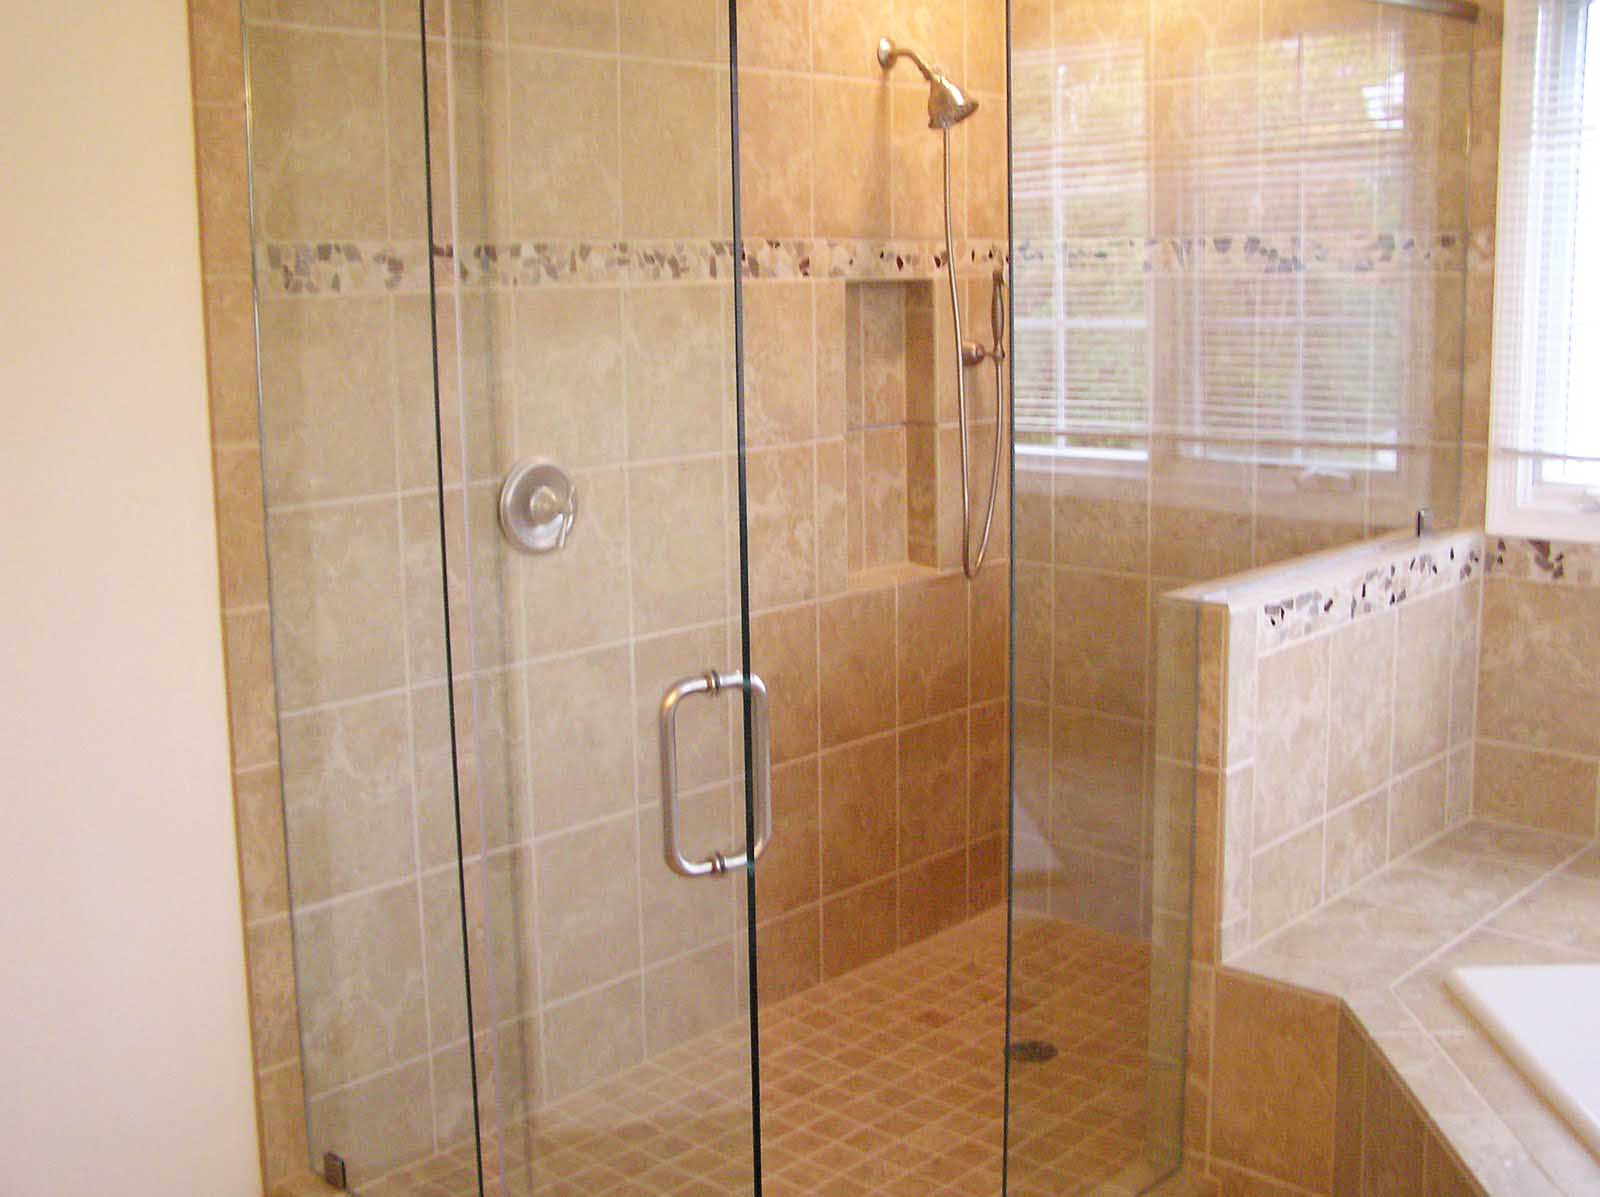 fashionable-bathroom-shower-tile-ideas-1